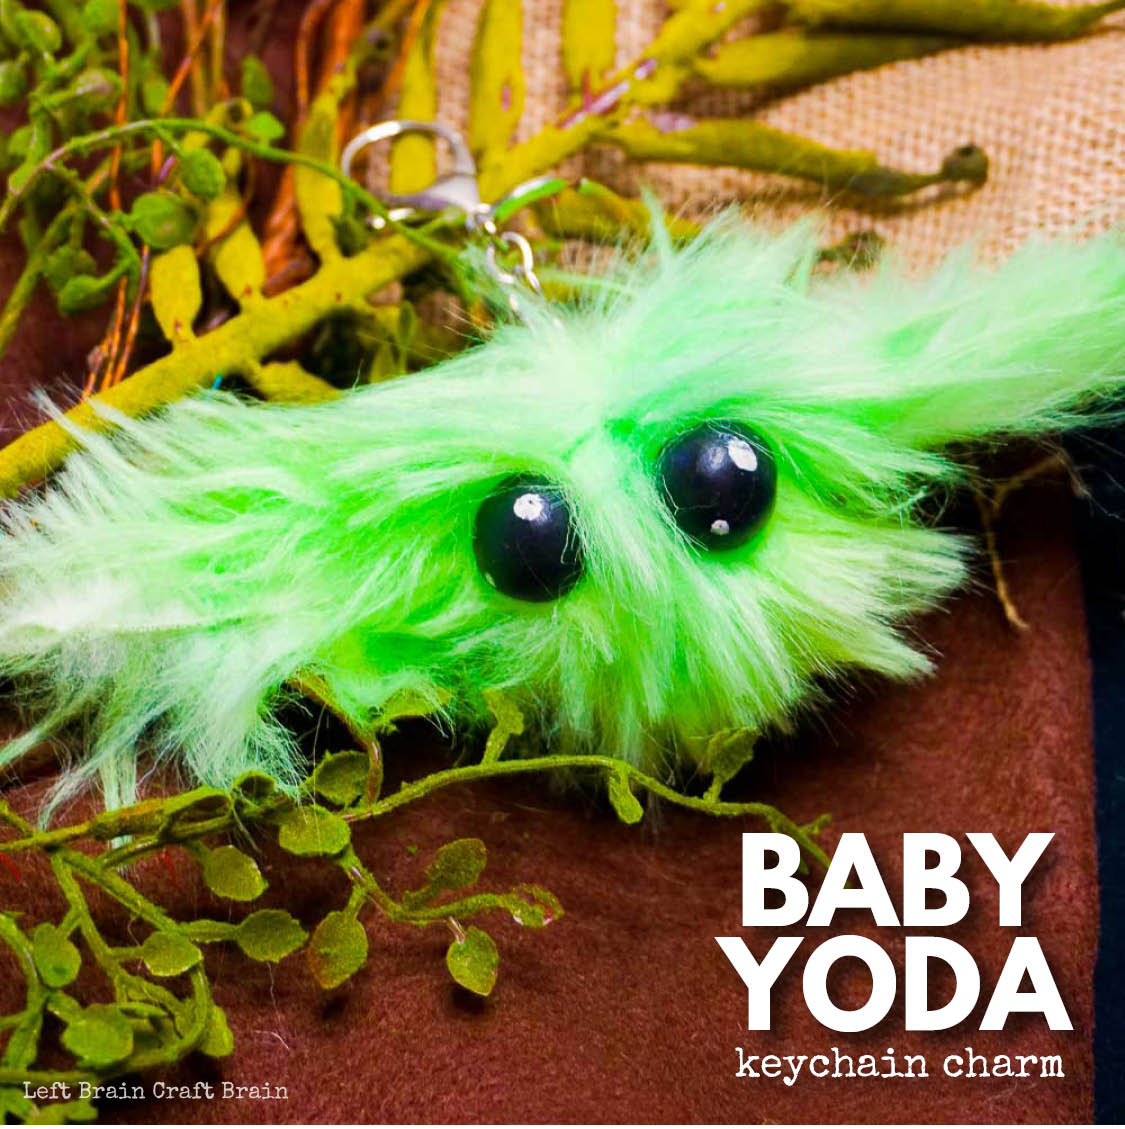 Isn't Baby Yoda from The Mandalorian the cutest thing? Since you can't buy one, make a Baby Yoda Keychain Charm.